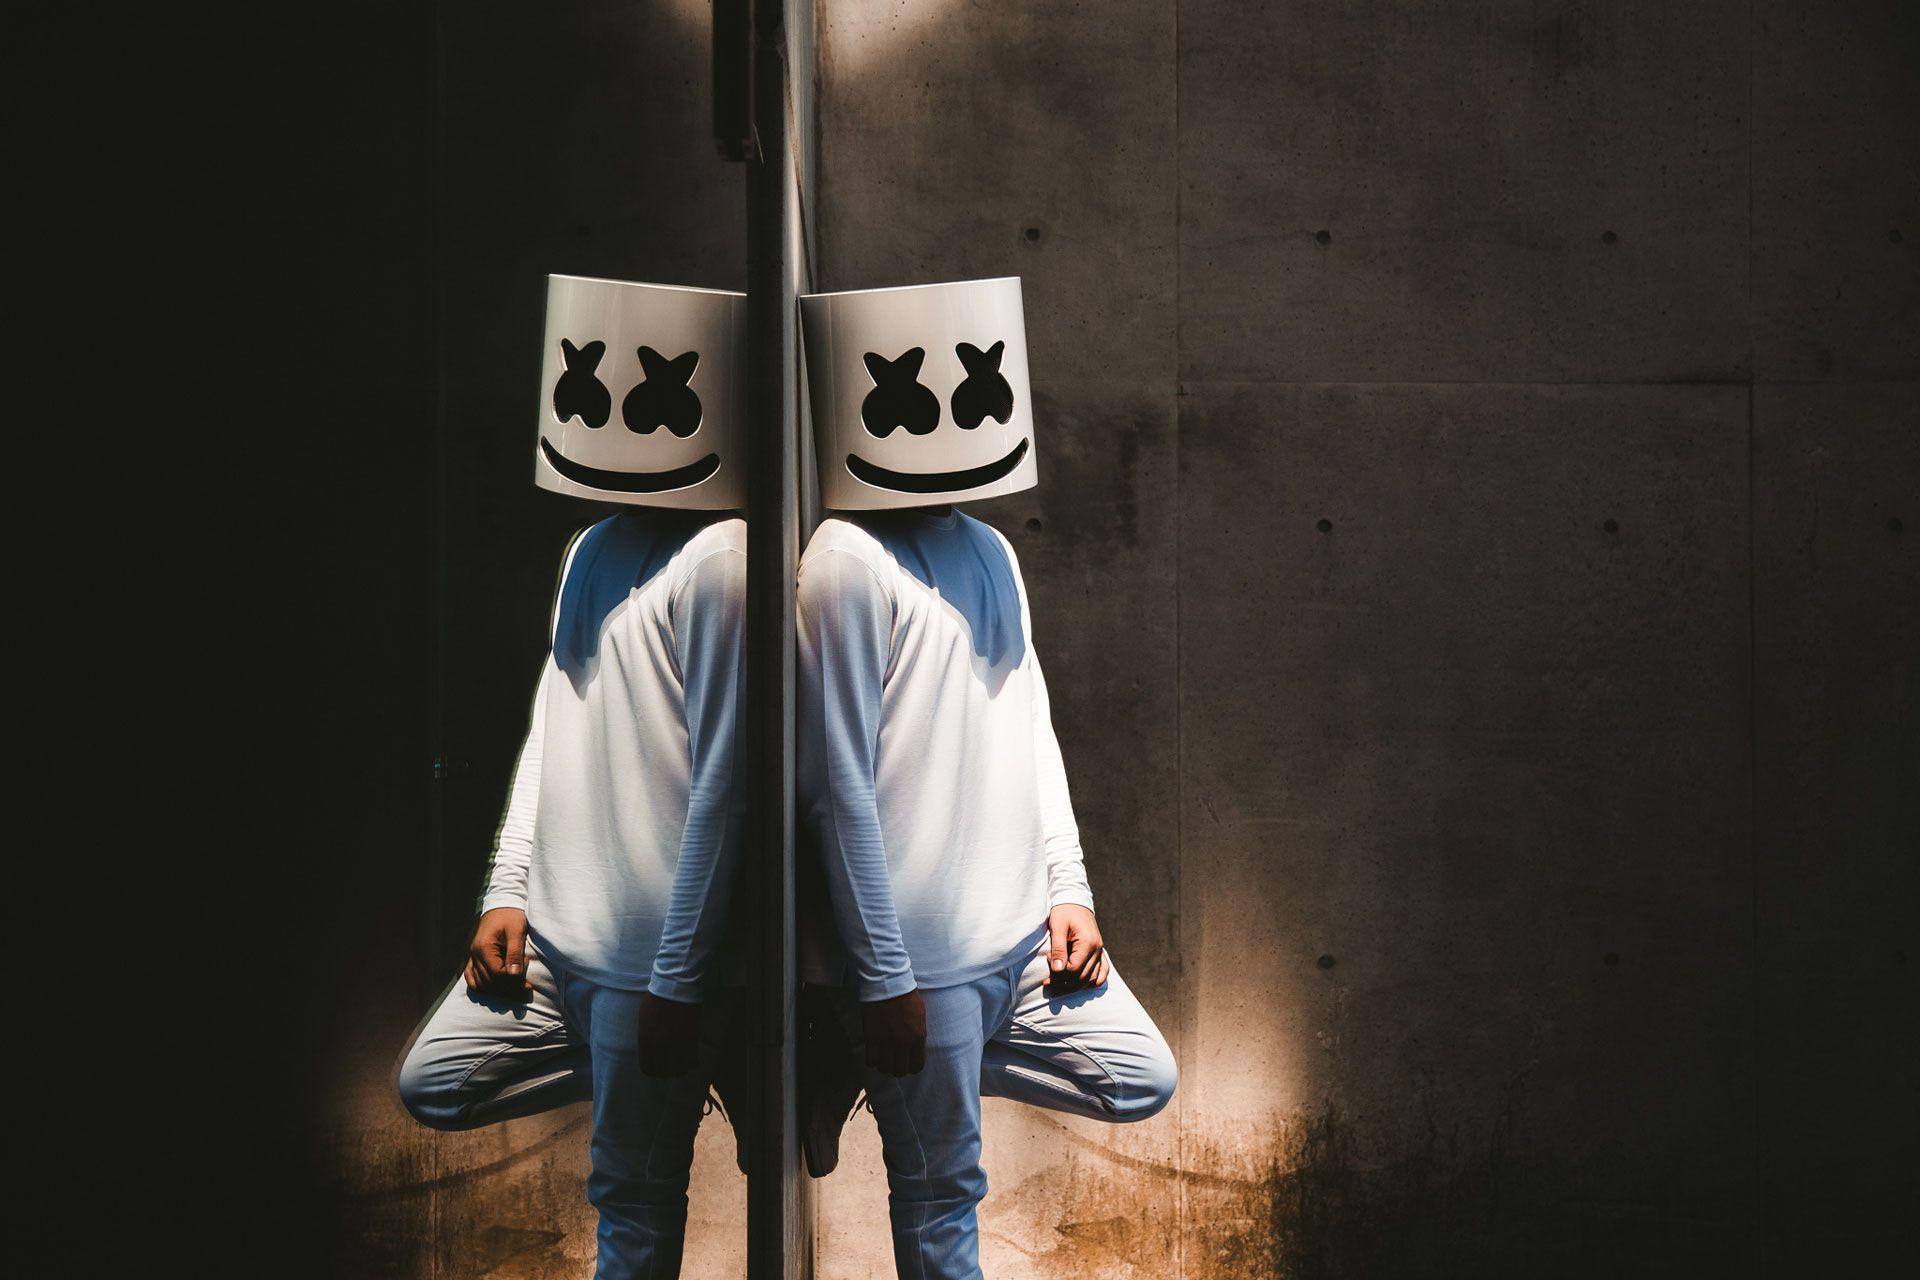 Marshmello DJ 2018 Wallpapers - Wallpaper Cave